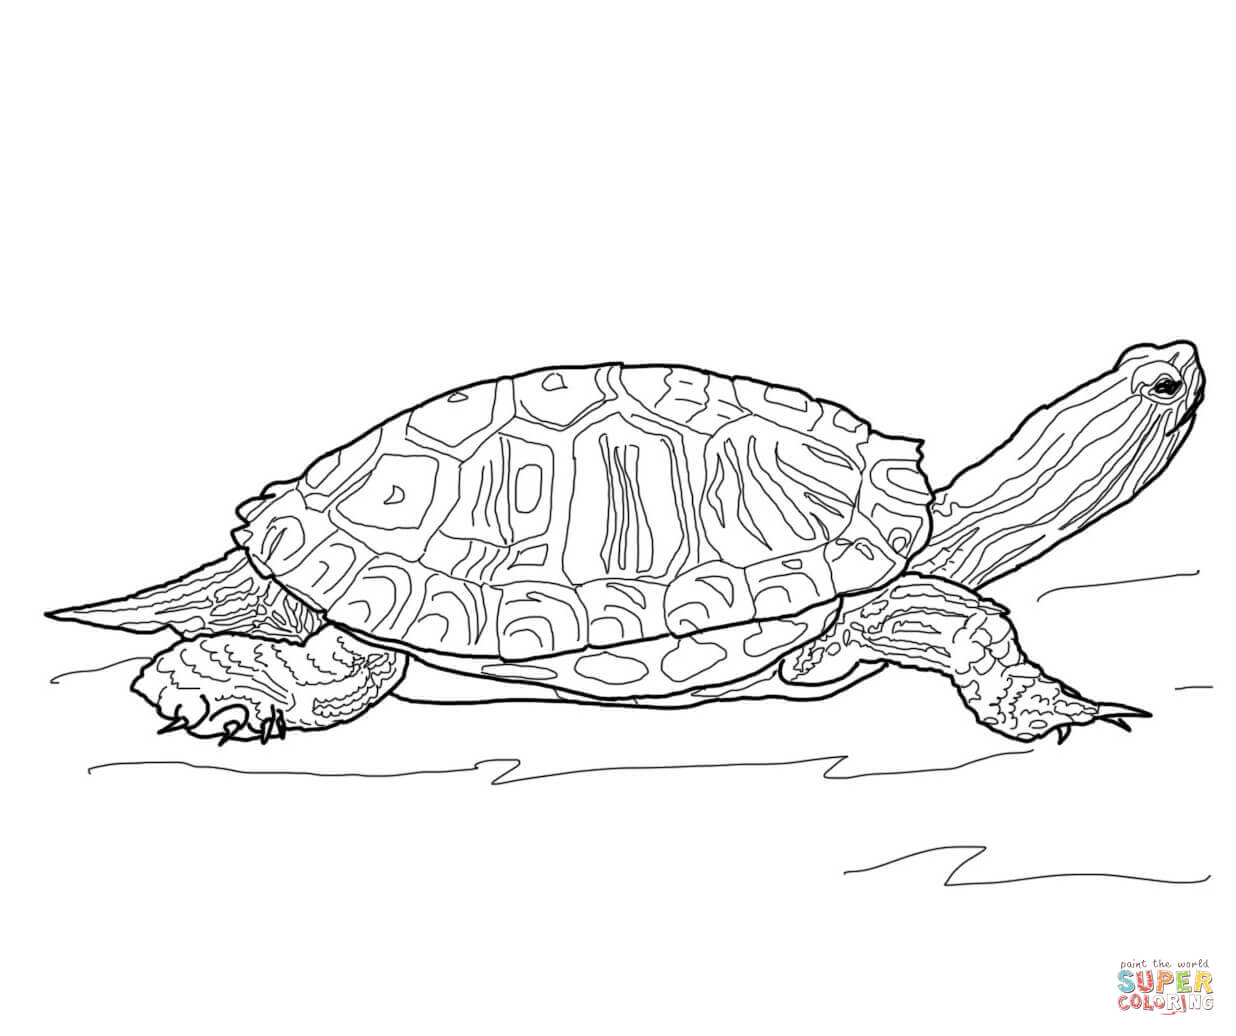 Red Eared Slider Turtle Coloring Page